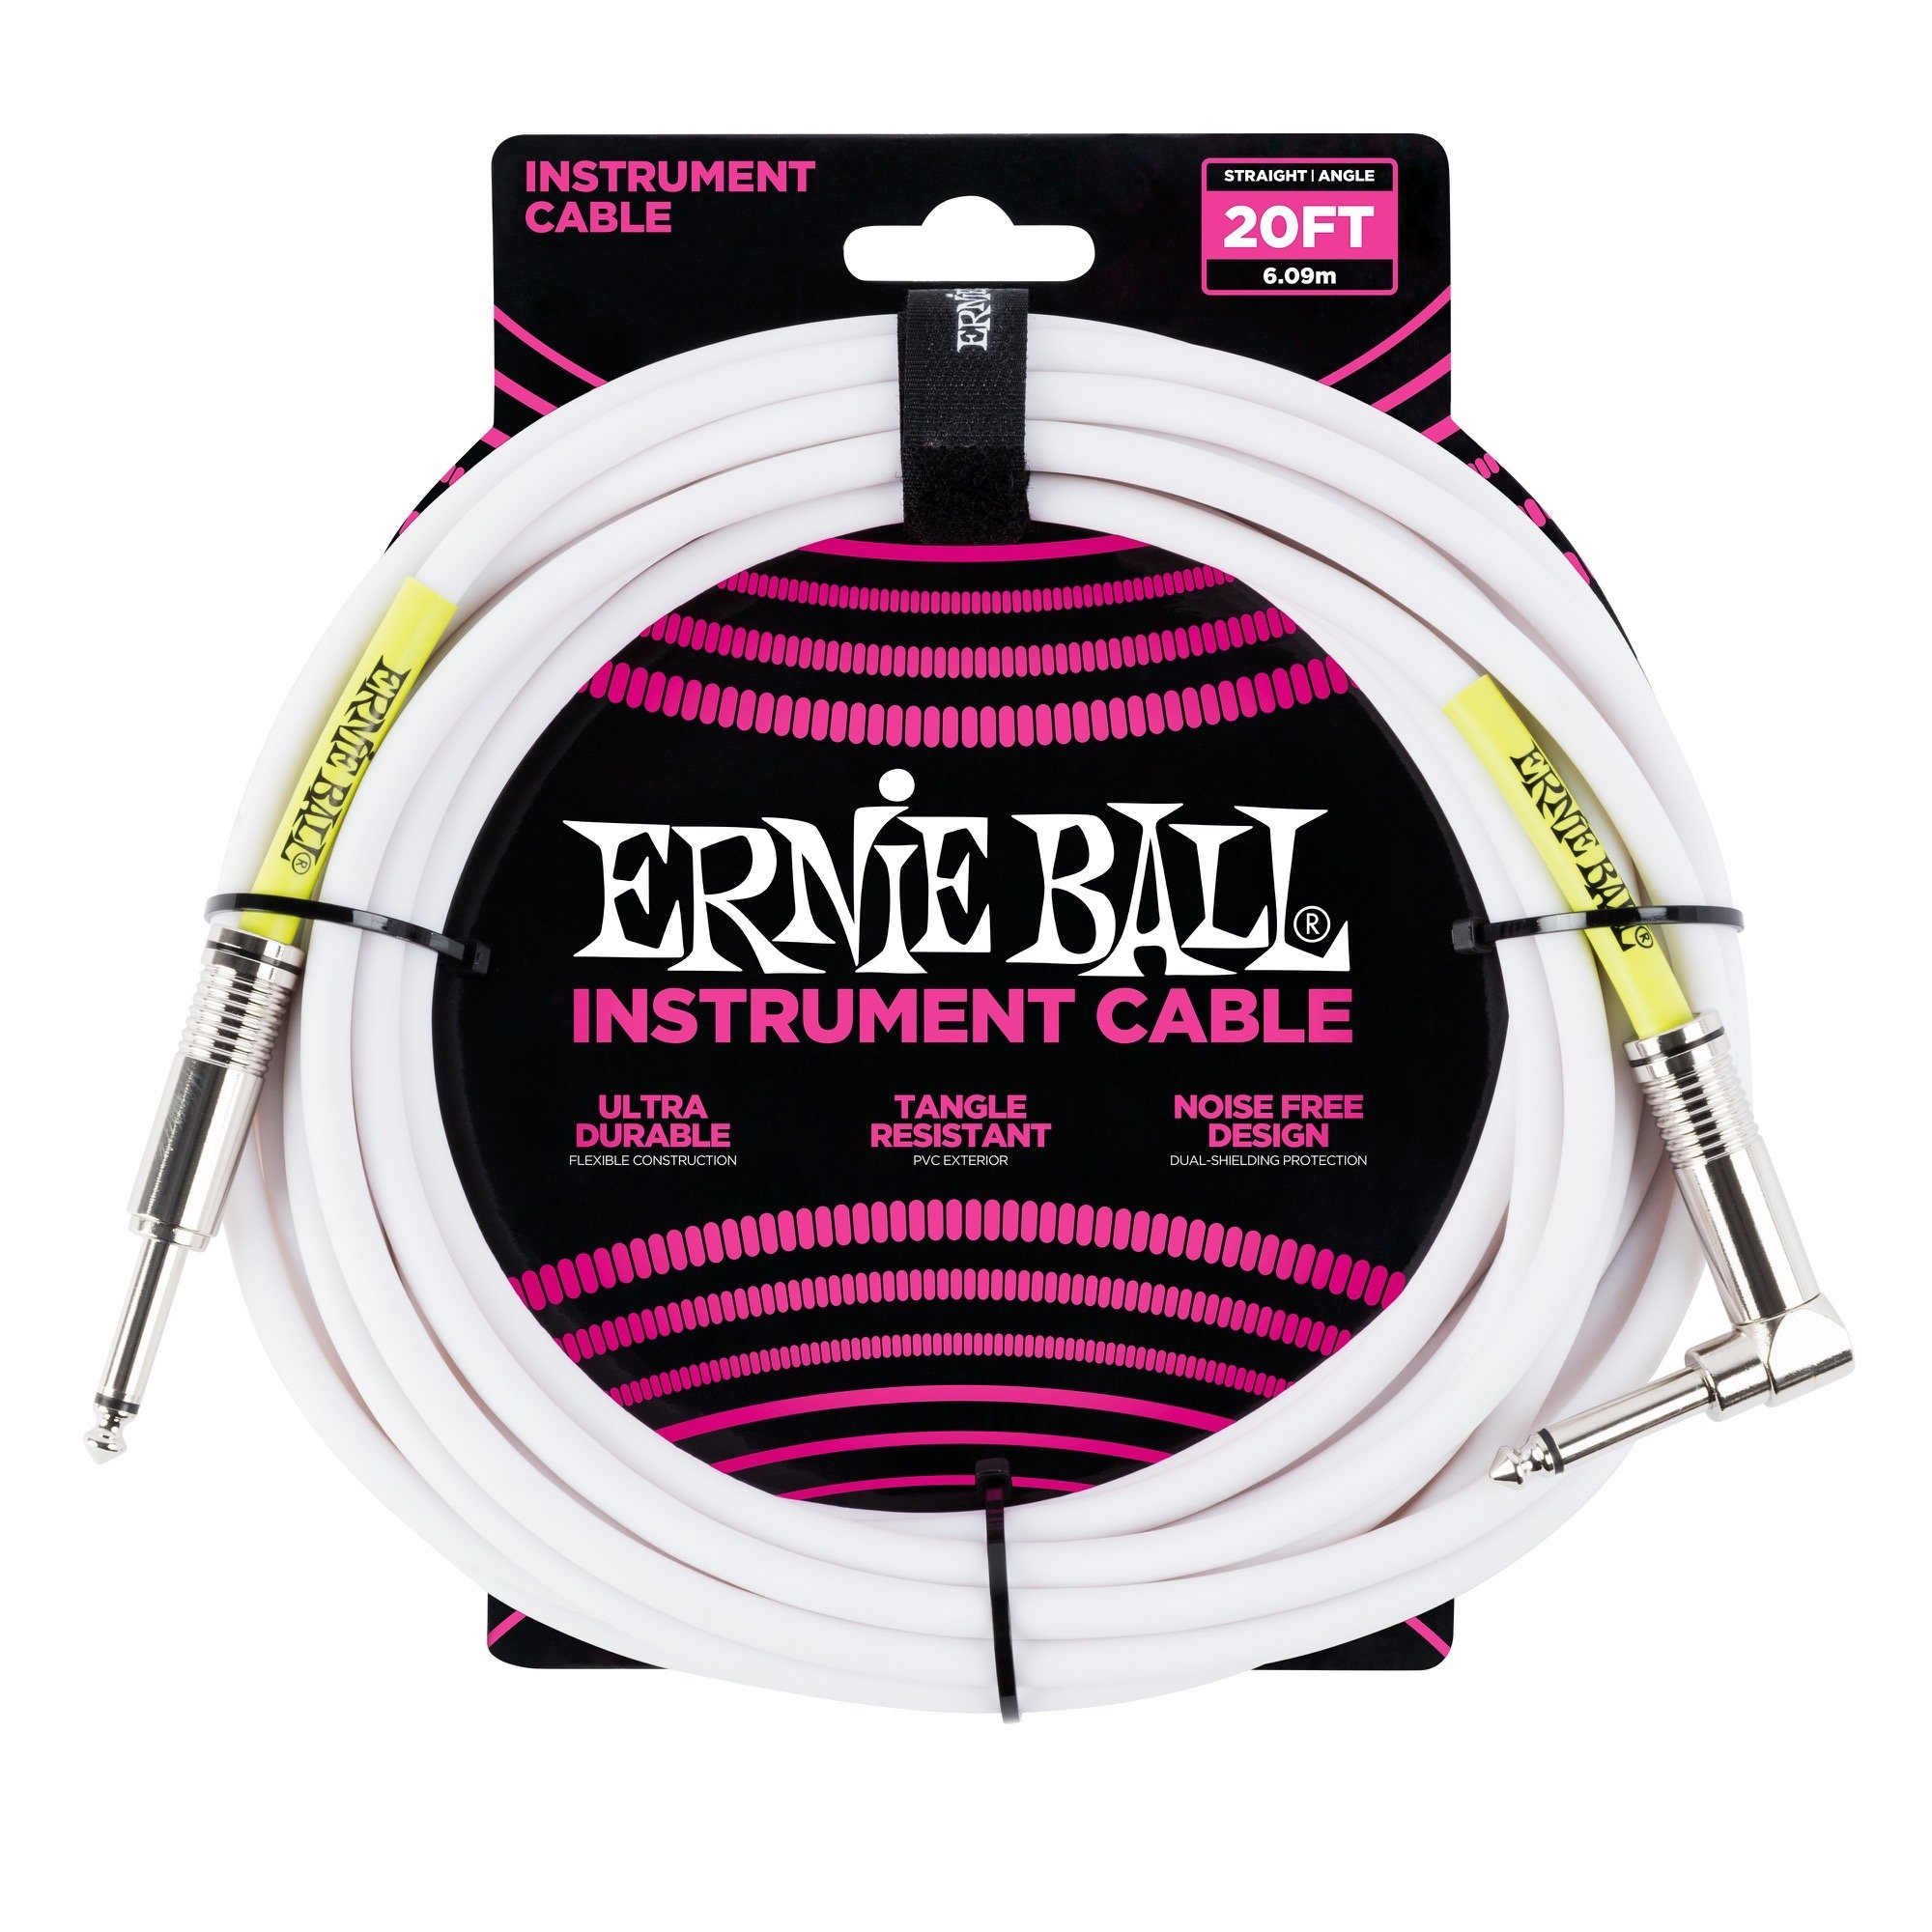 Ernie Ball 20' Straight / Angle Instrument Cable - White